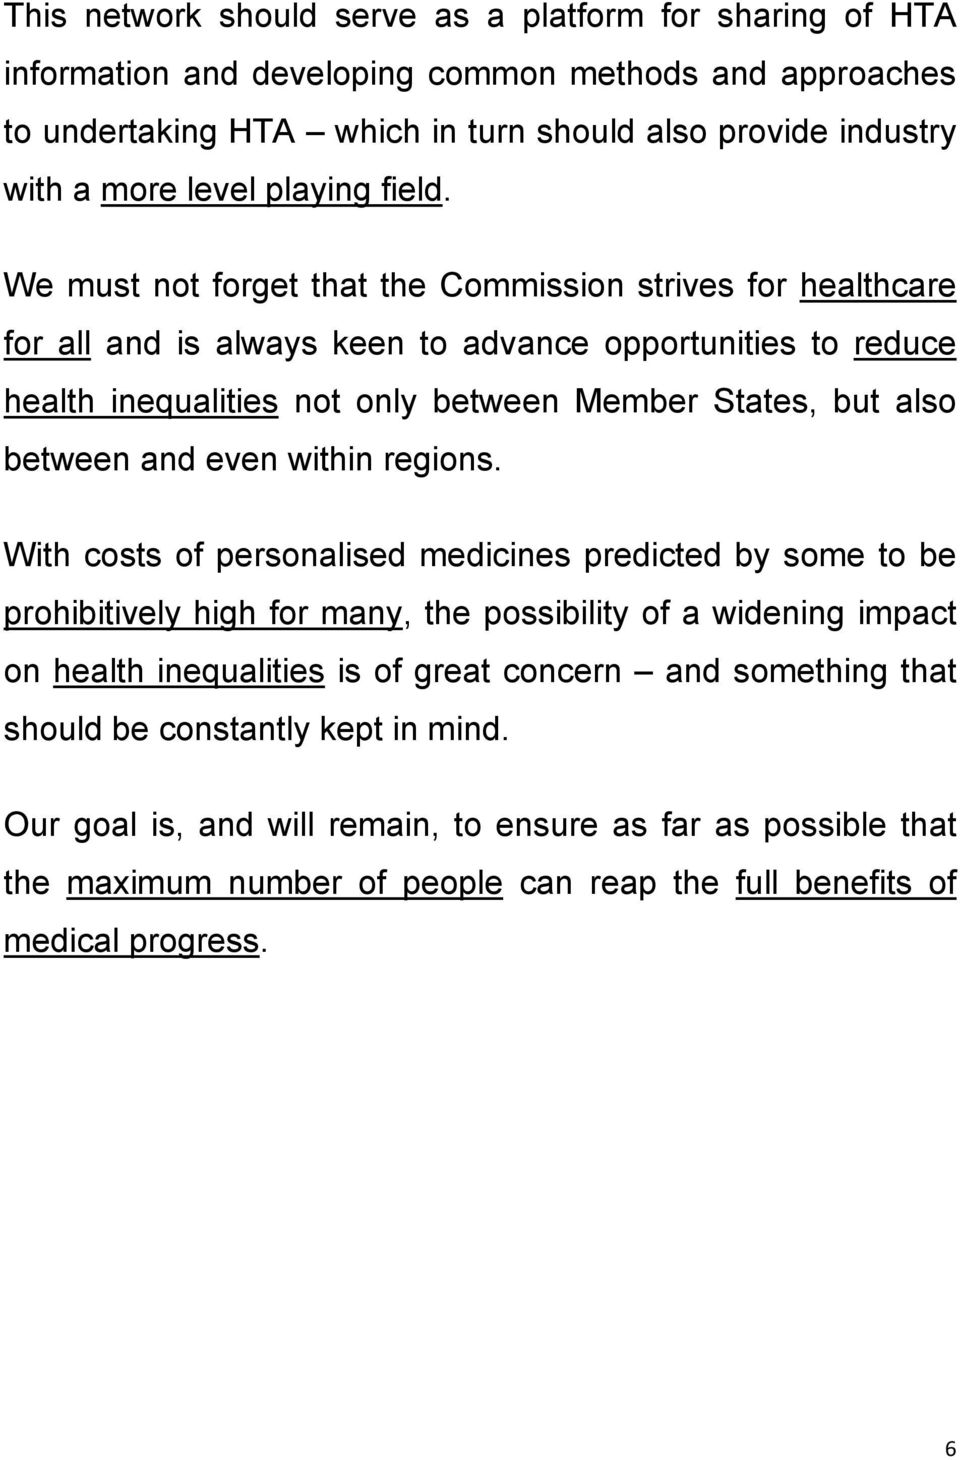 We must not forget that the Commission strives for healthcare for all and is always keen to advance opportunities to reduce health inequalities not only between Member States, but also between and